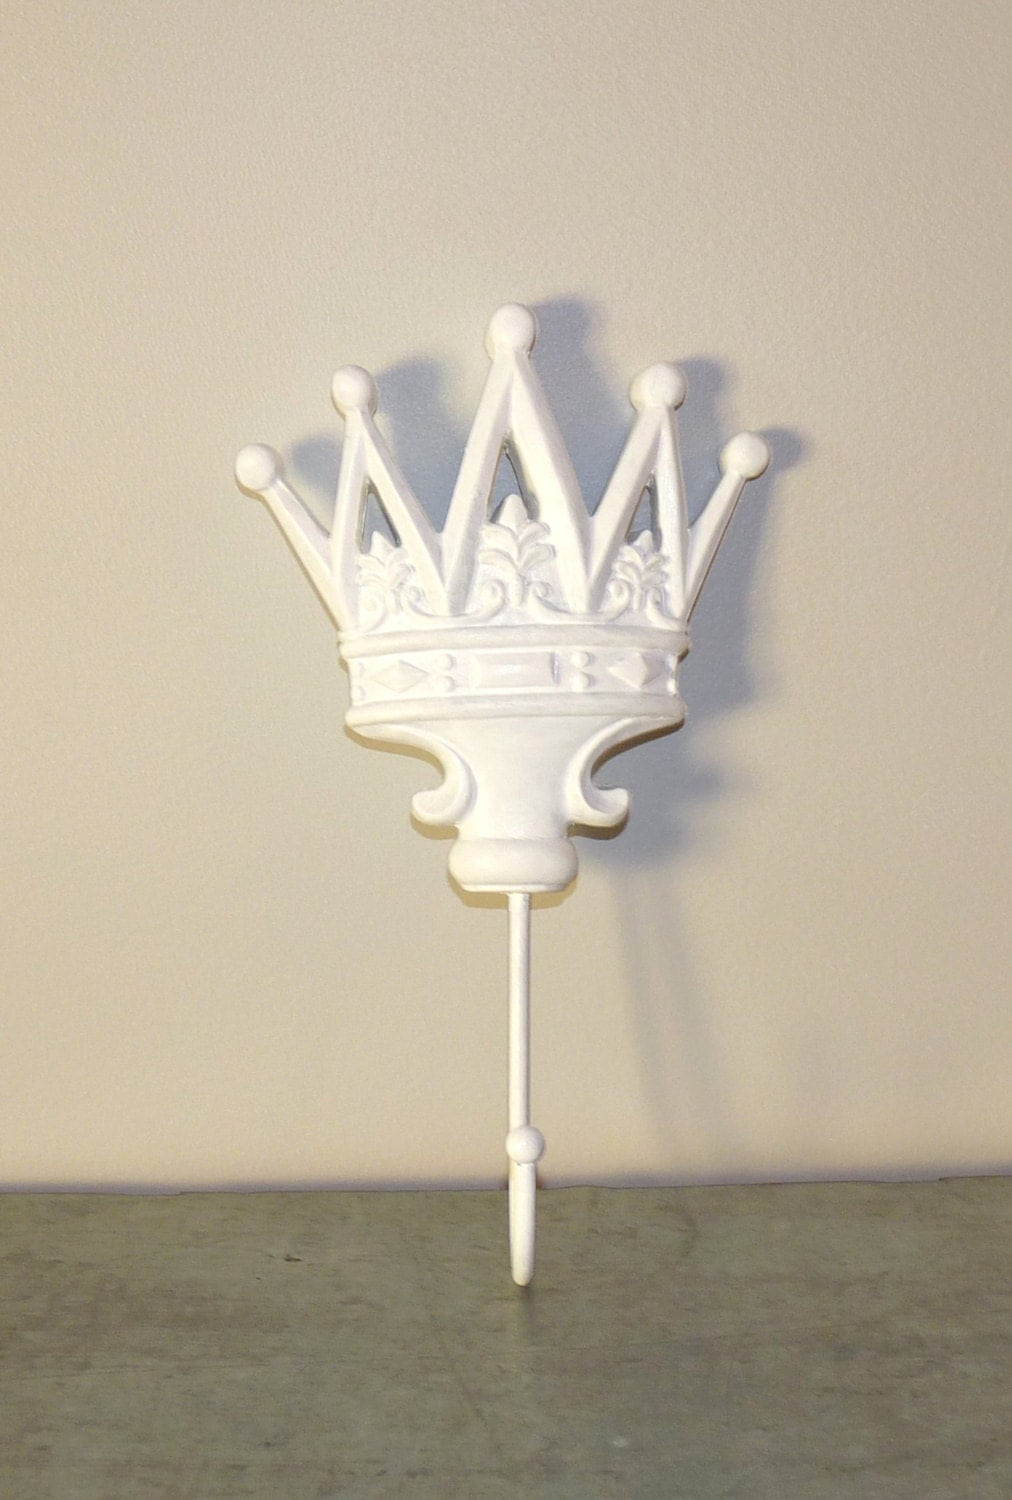 Princess Decor Wall Hooks Clothing Hooks Crown by LittleShopofPop